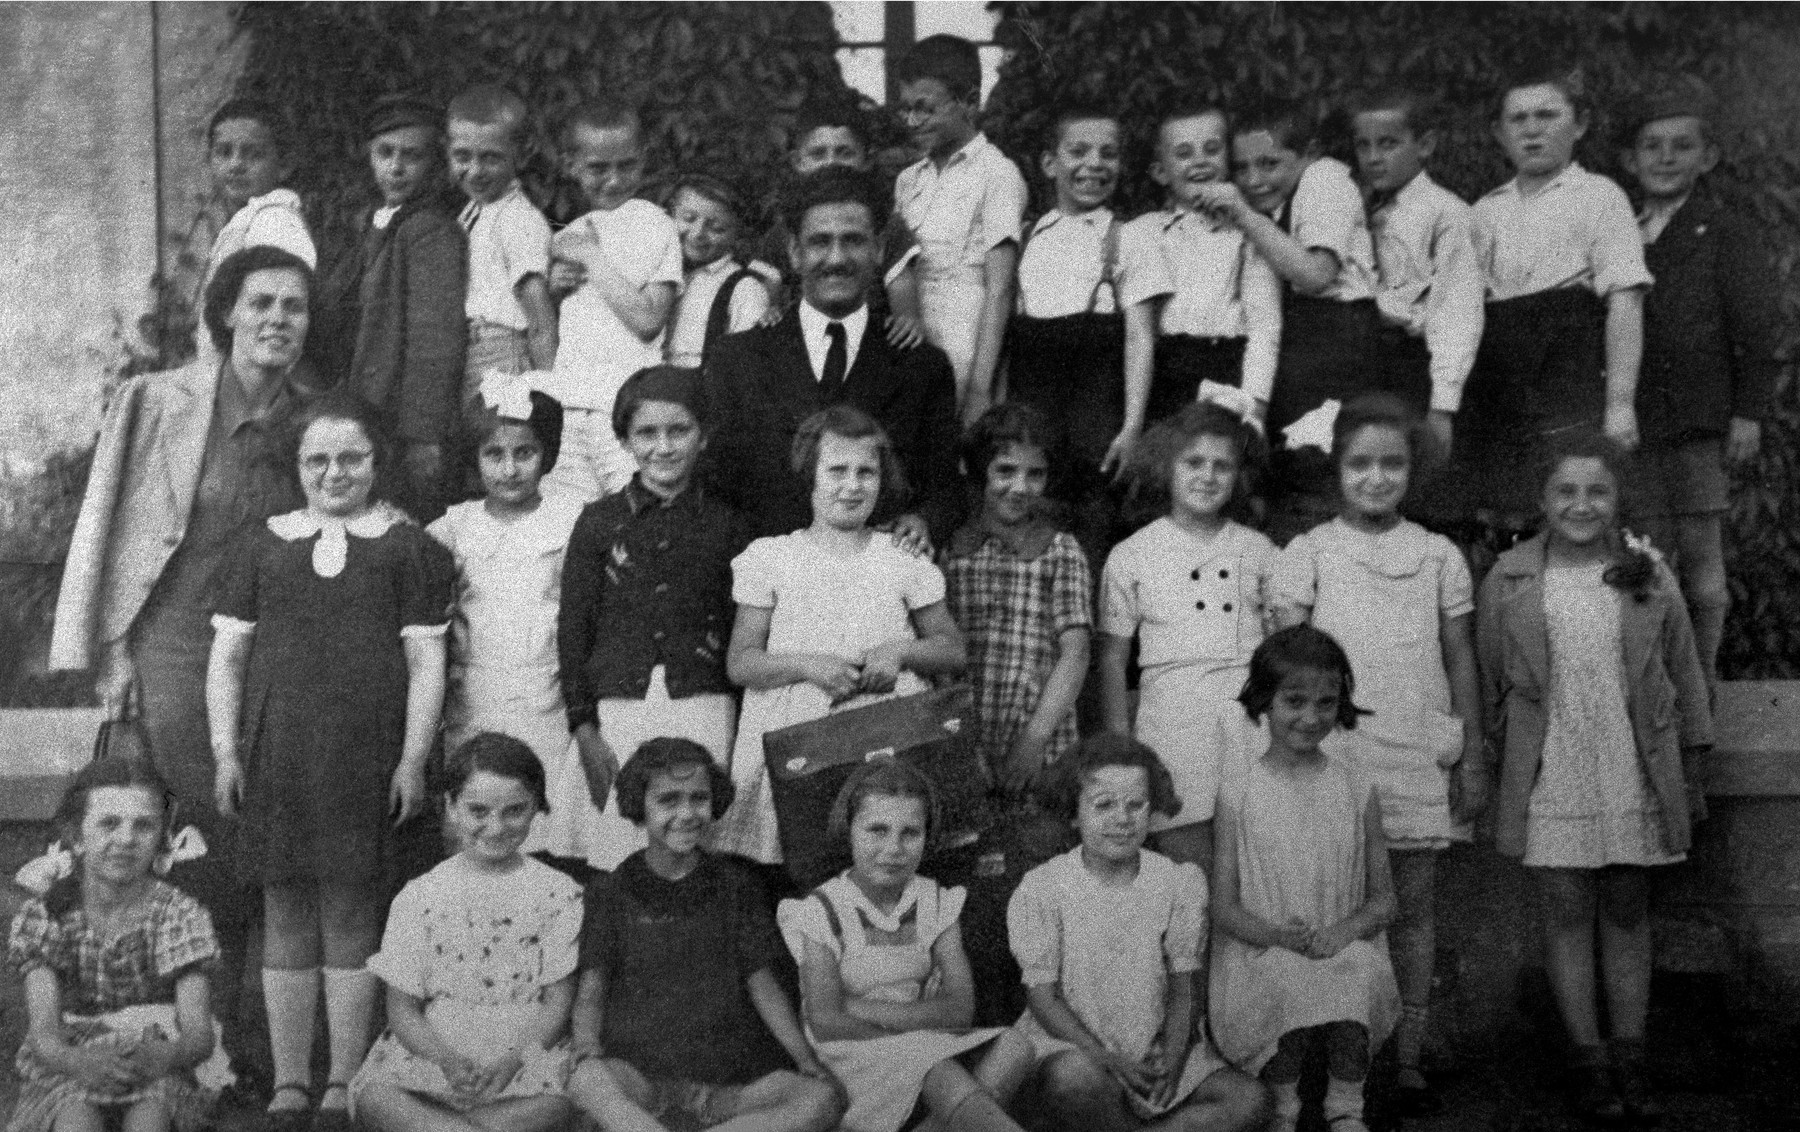 Class portrait of the second grade pupils at the American school in Sofia, Bulgaria.  Among those pictured is Israel Baruch (top row, second from the right).